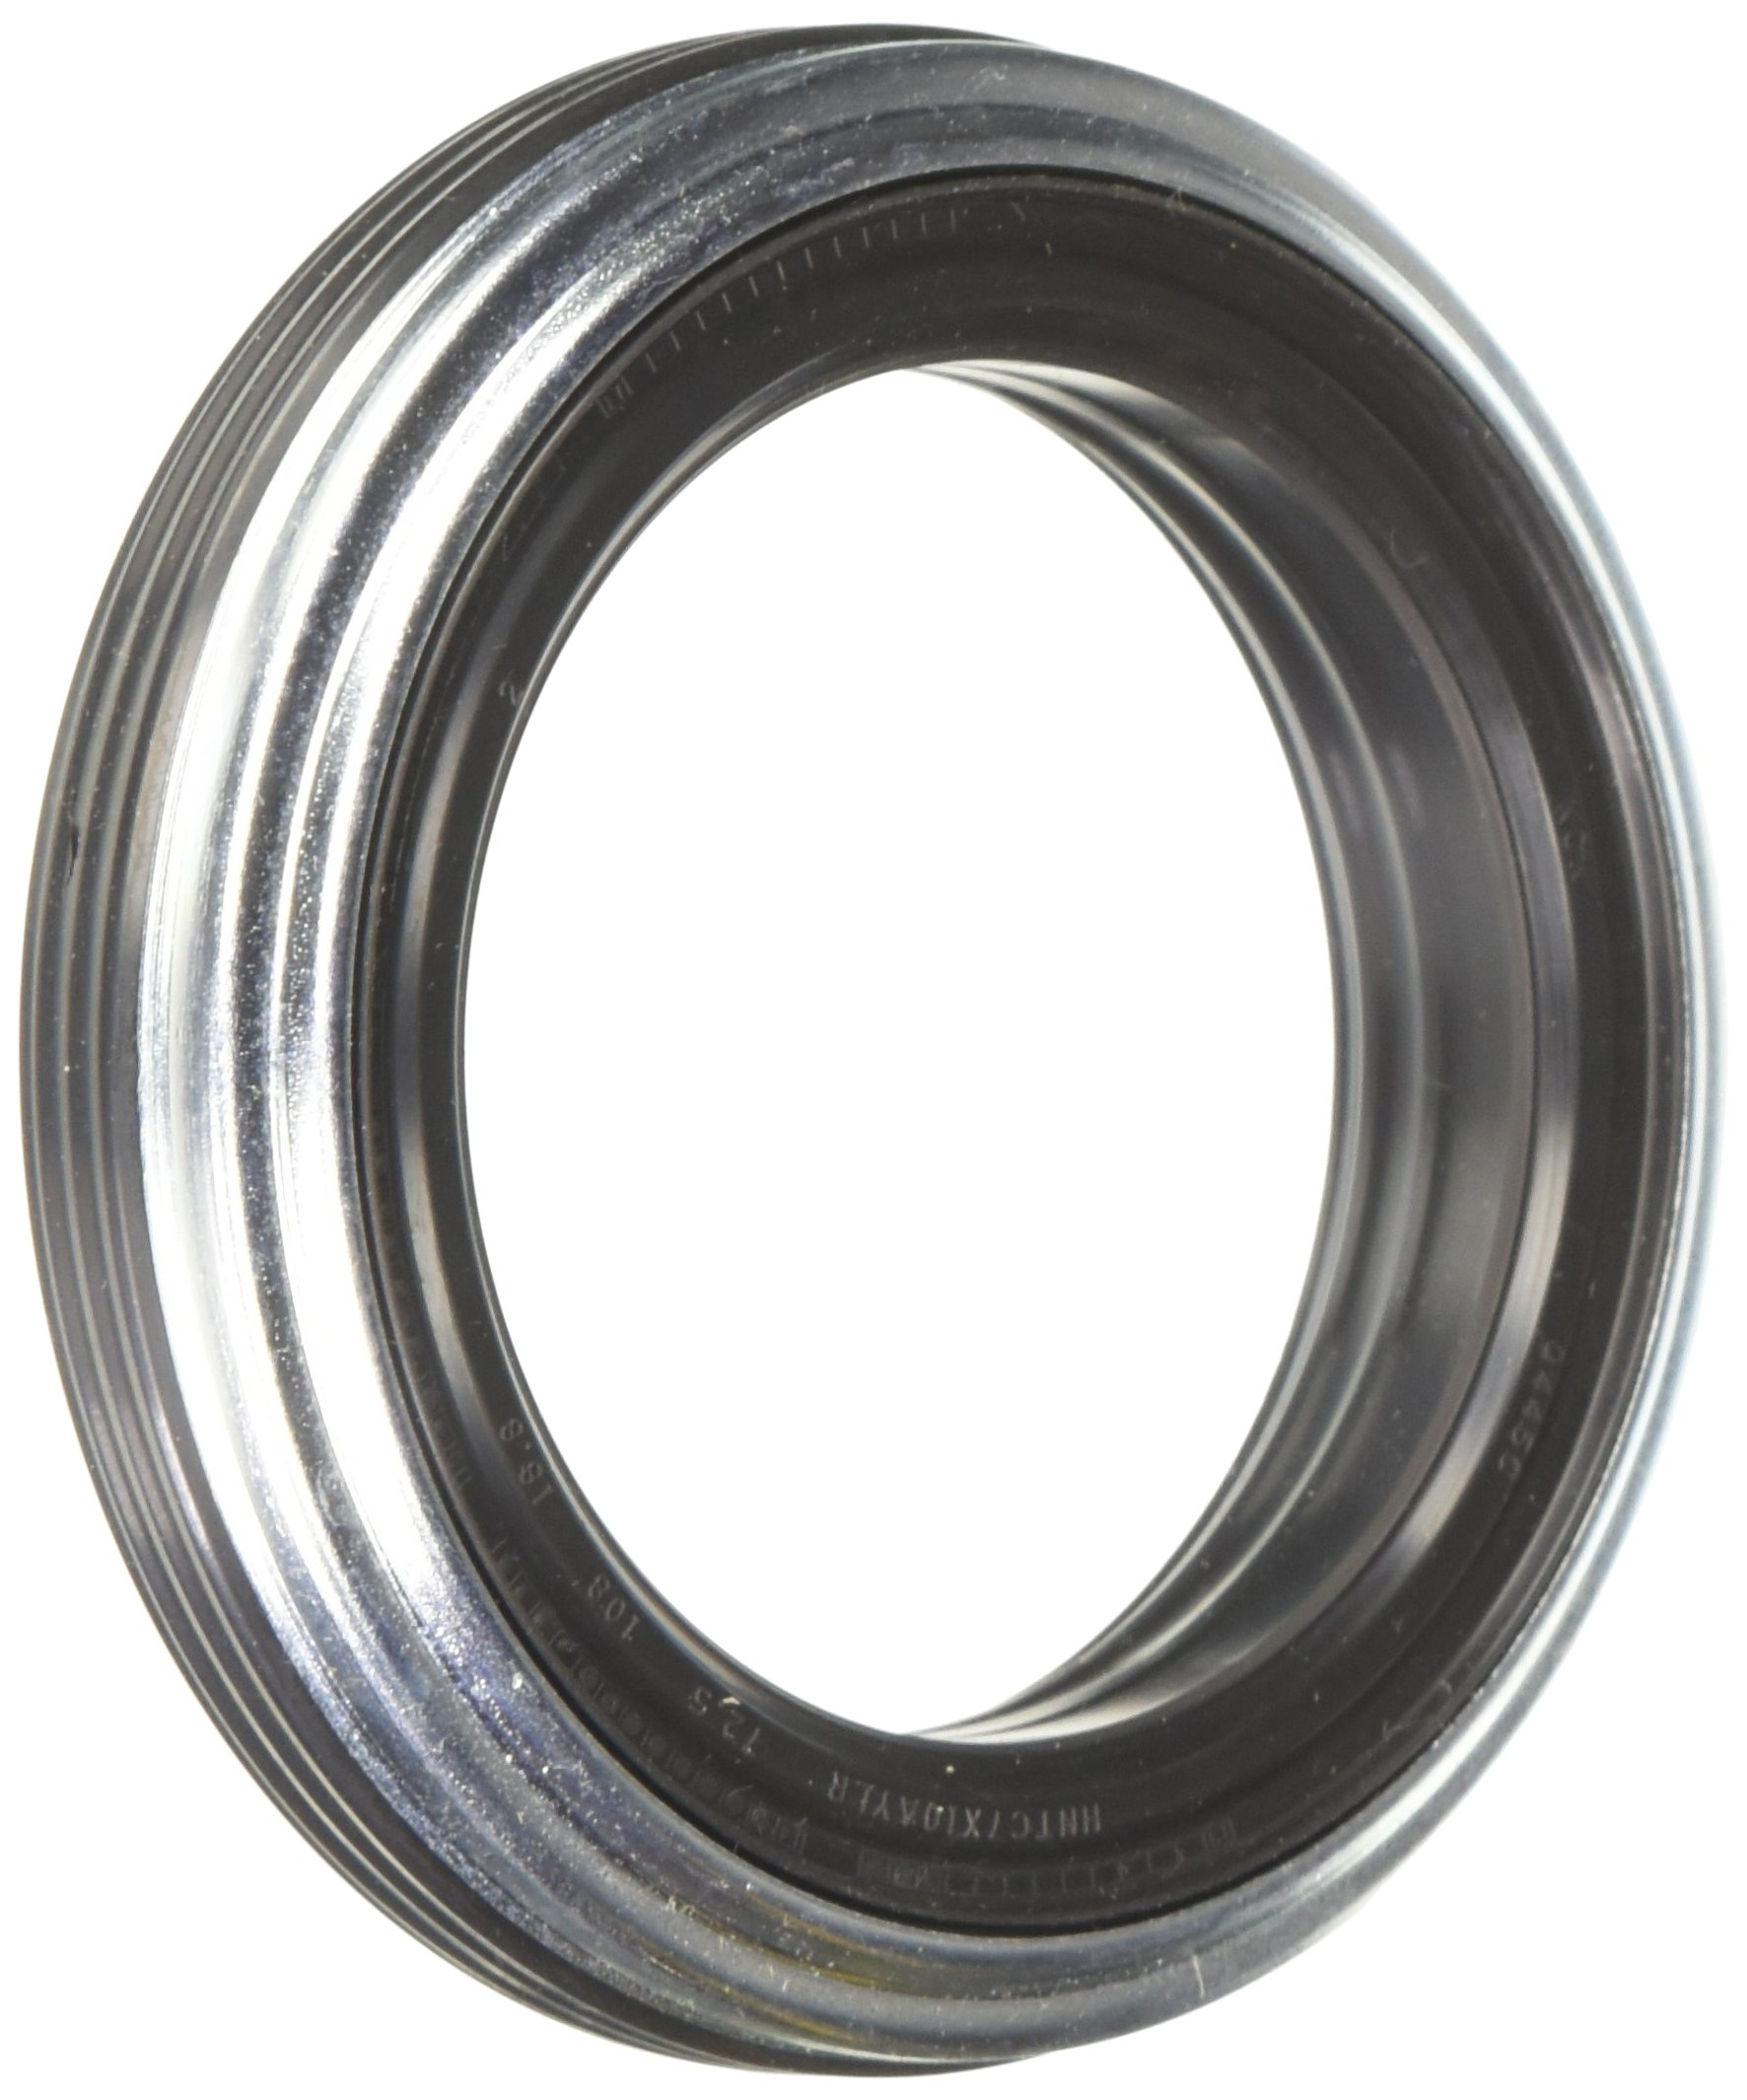 Timken 710563 Rear Differential Pinion Seal by Timken